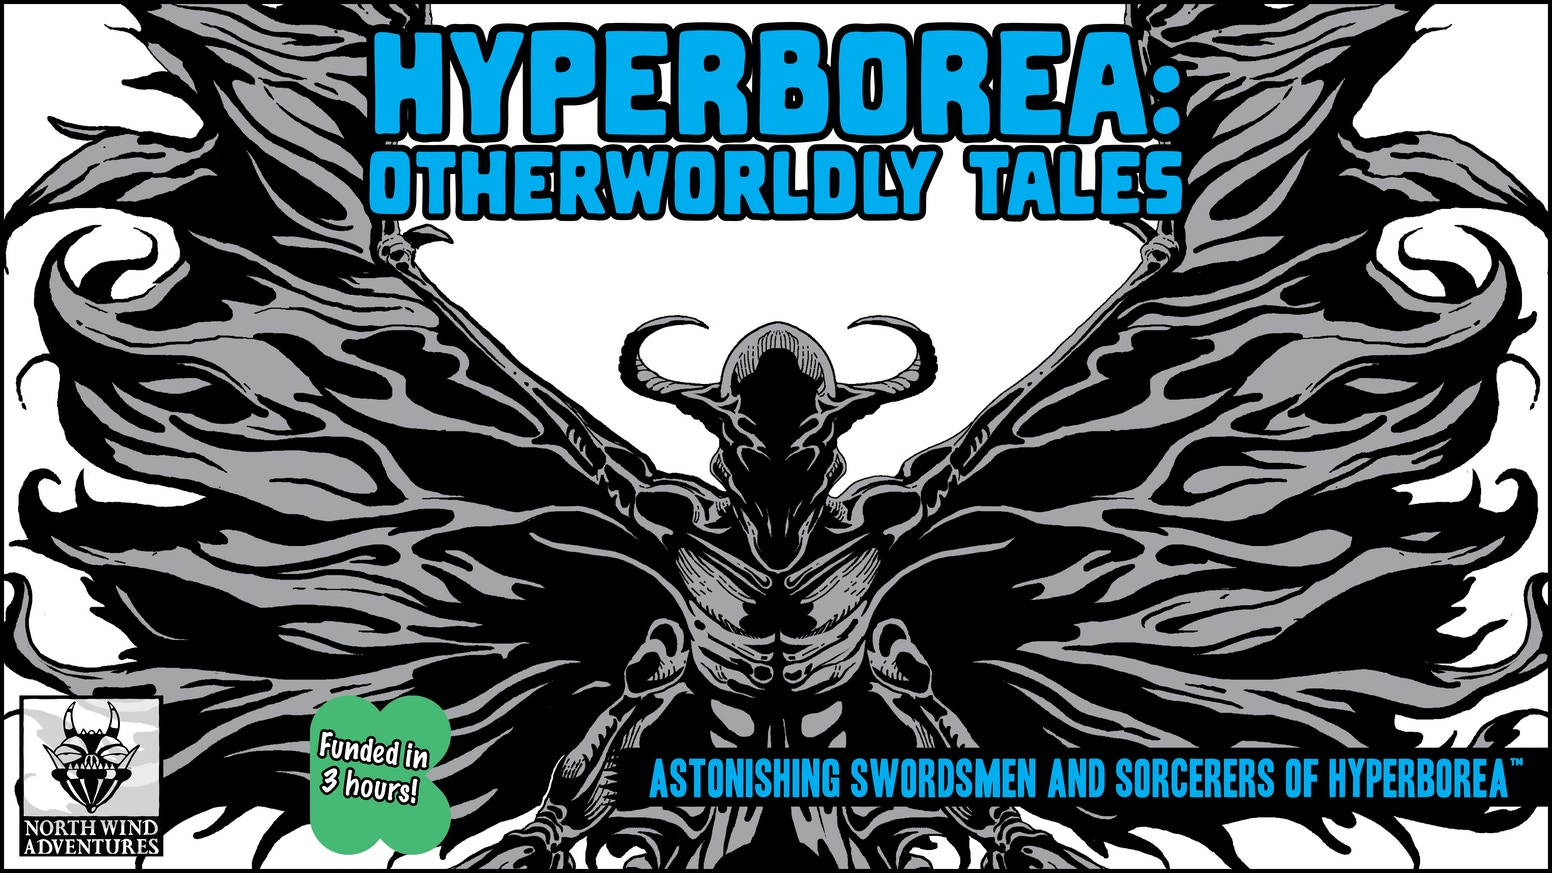 Two new adventure modules for Astonishing Swordsmen & Sorcerers of Hyperborea